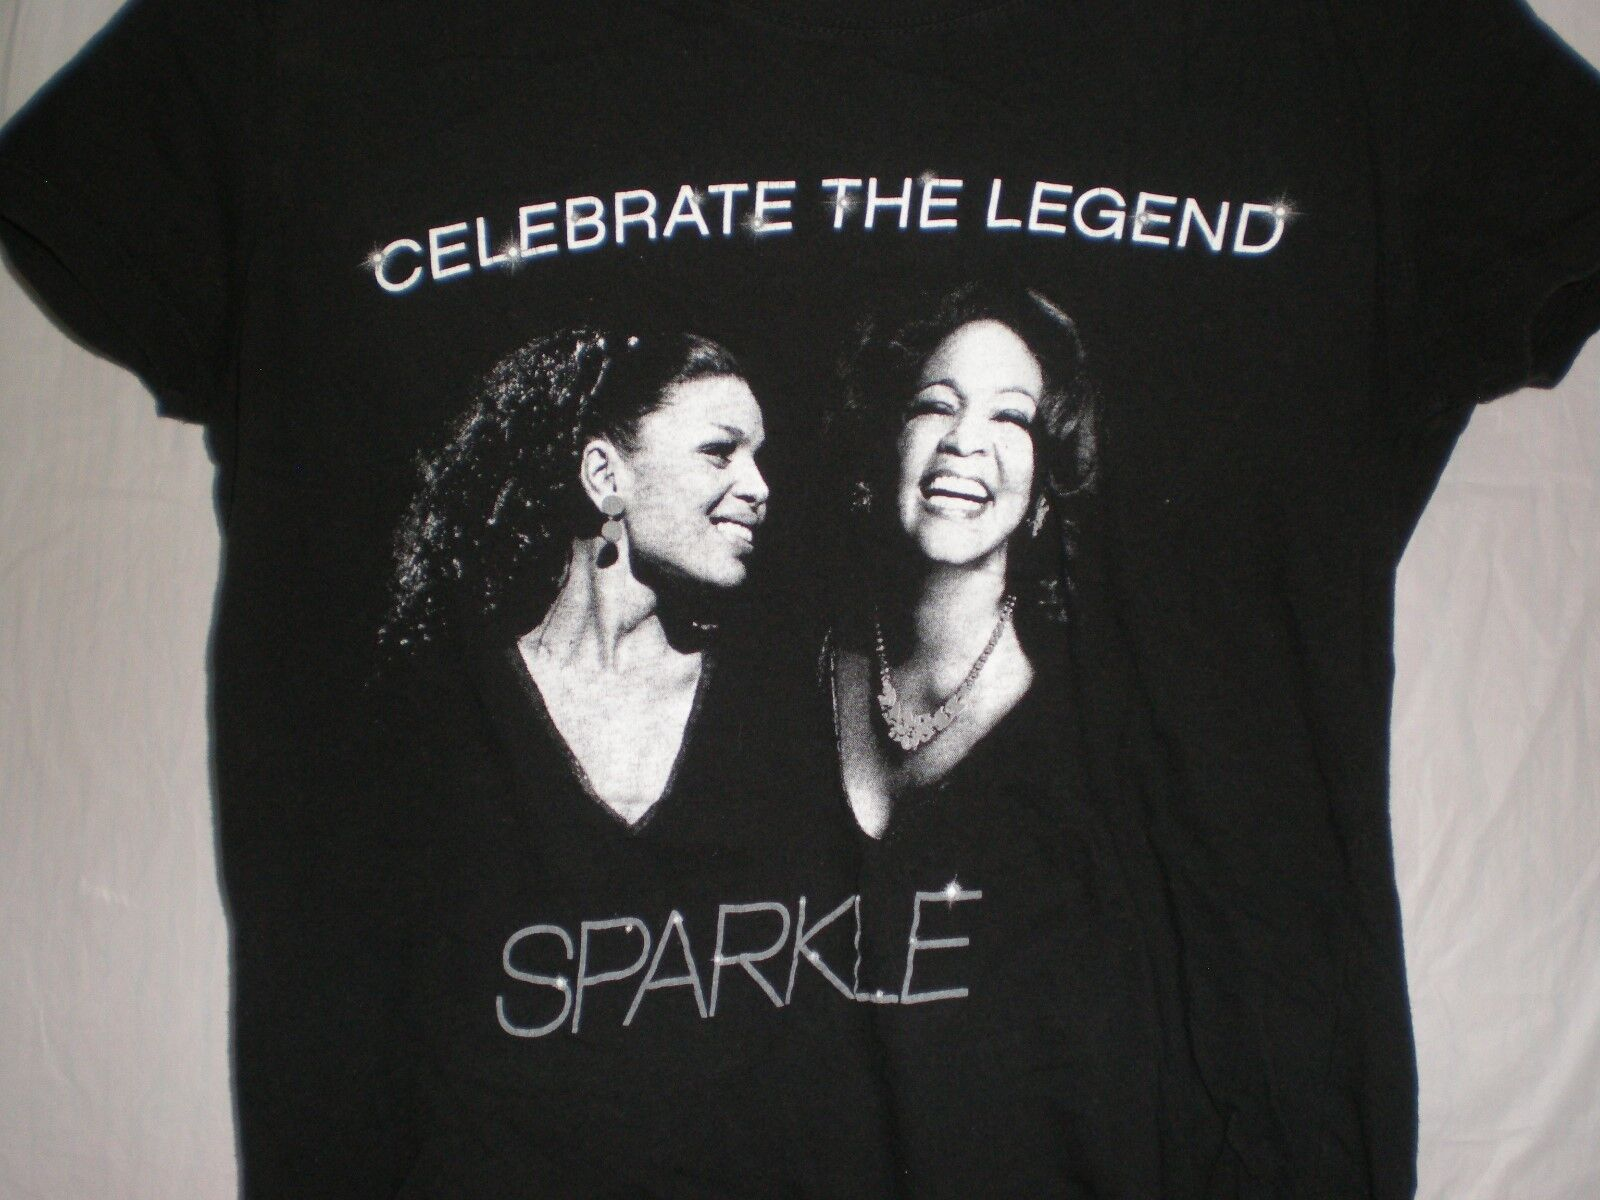 Sparkle T SHIRT Celebrate The Legend In Theaters August 17 2012 grand